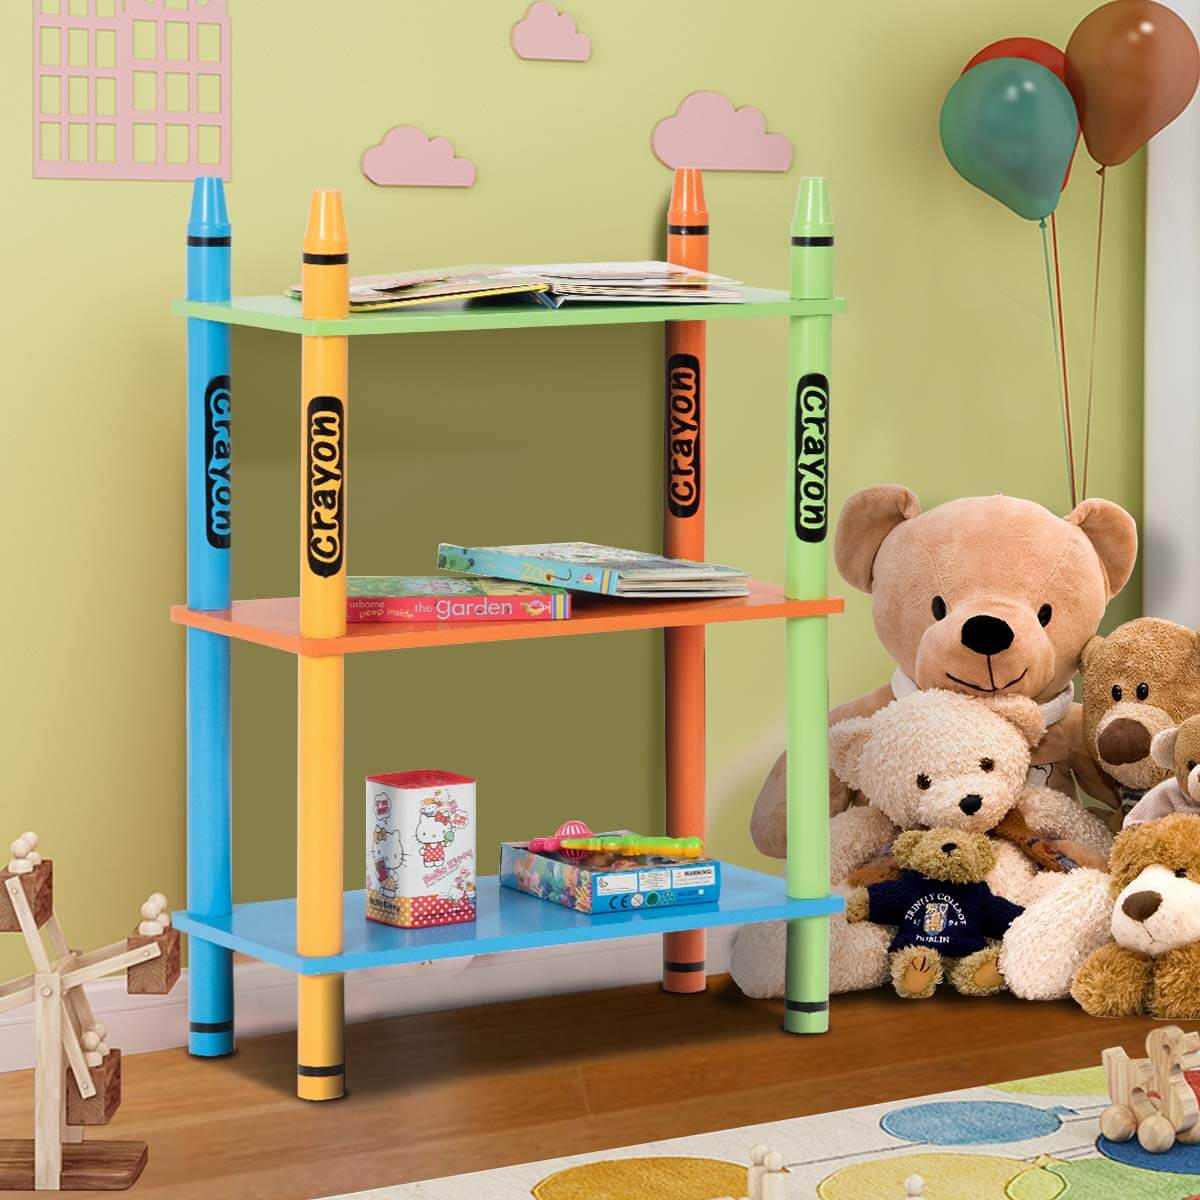 Three-Tier Crayon Shelves Storage Idea